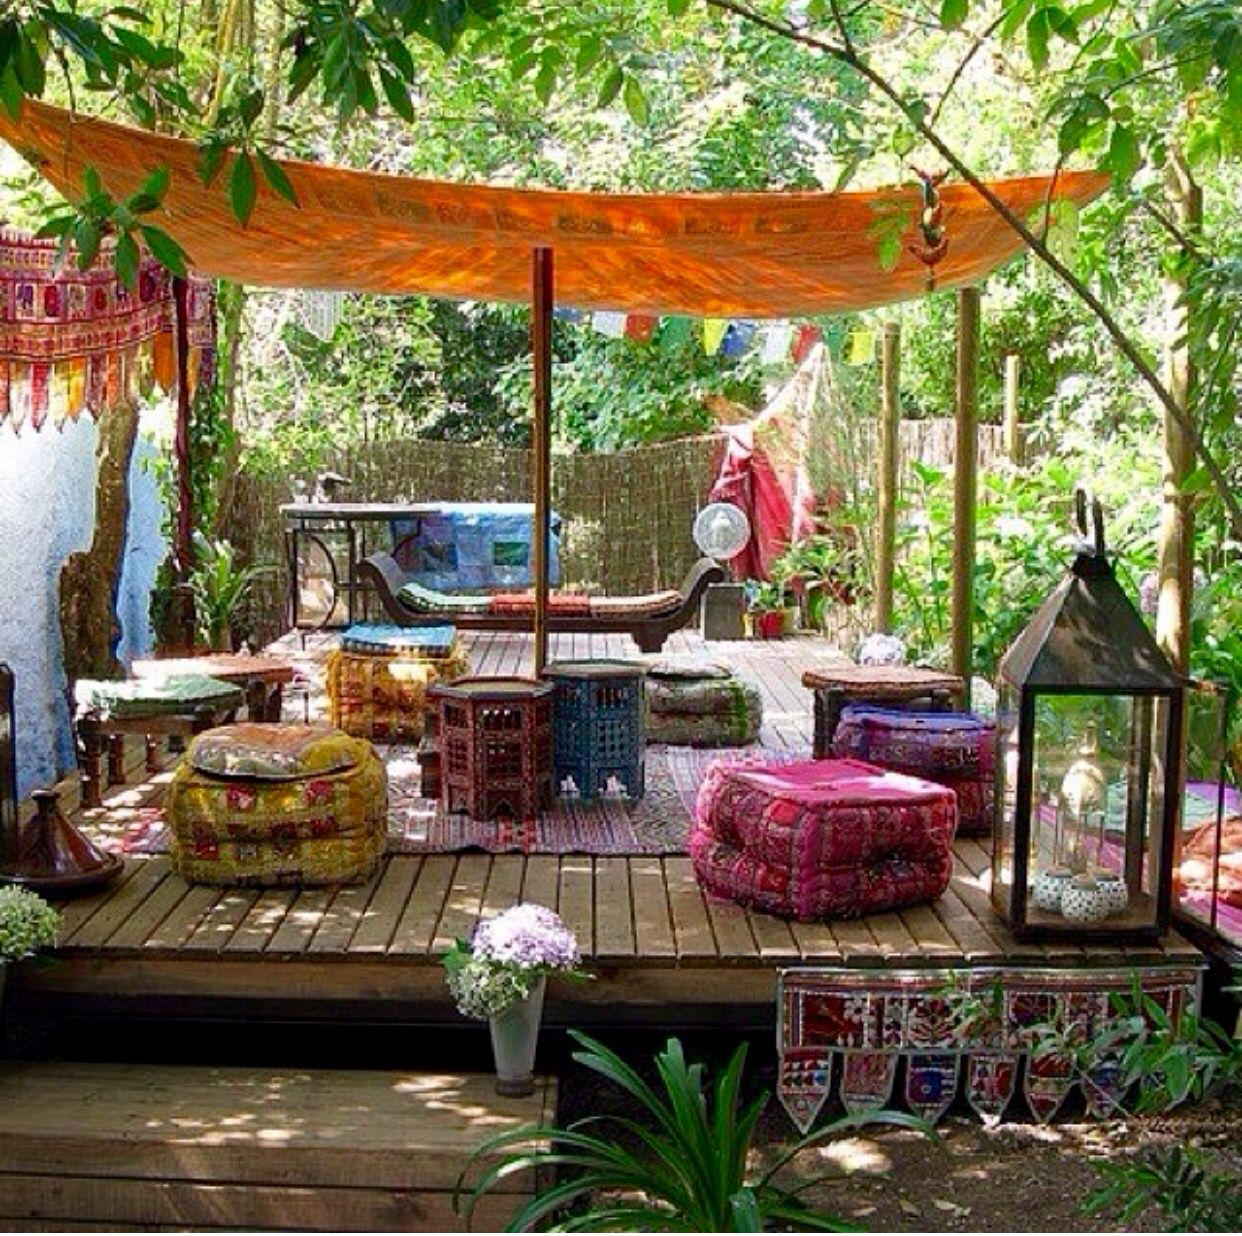 Bohemian outdoor sitting area with chairs and carpet